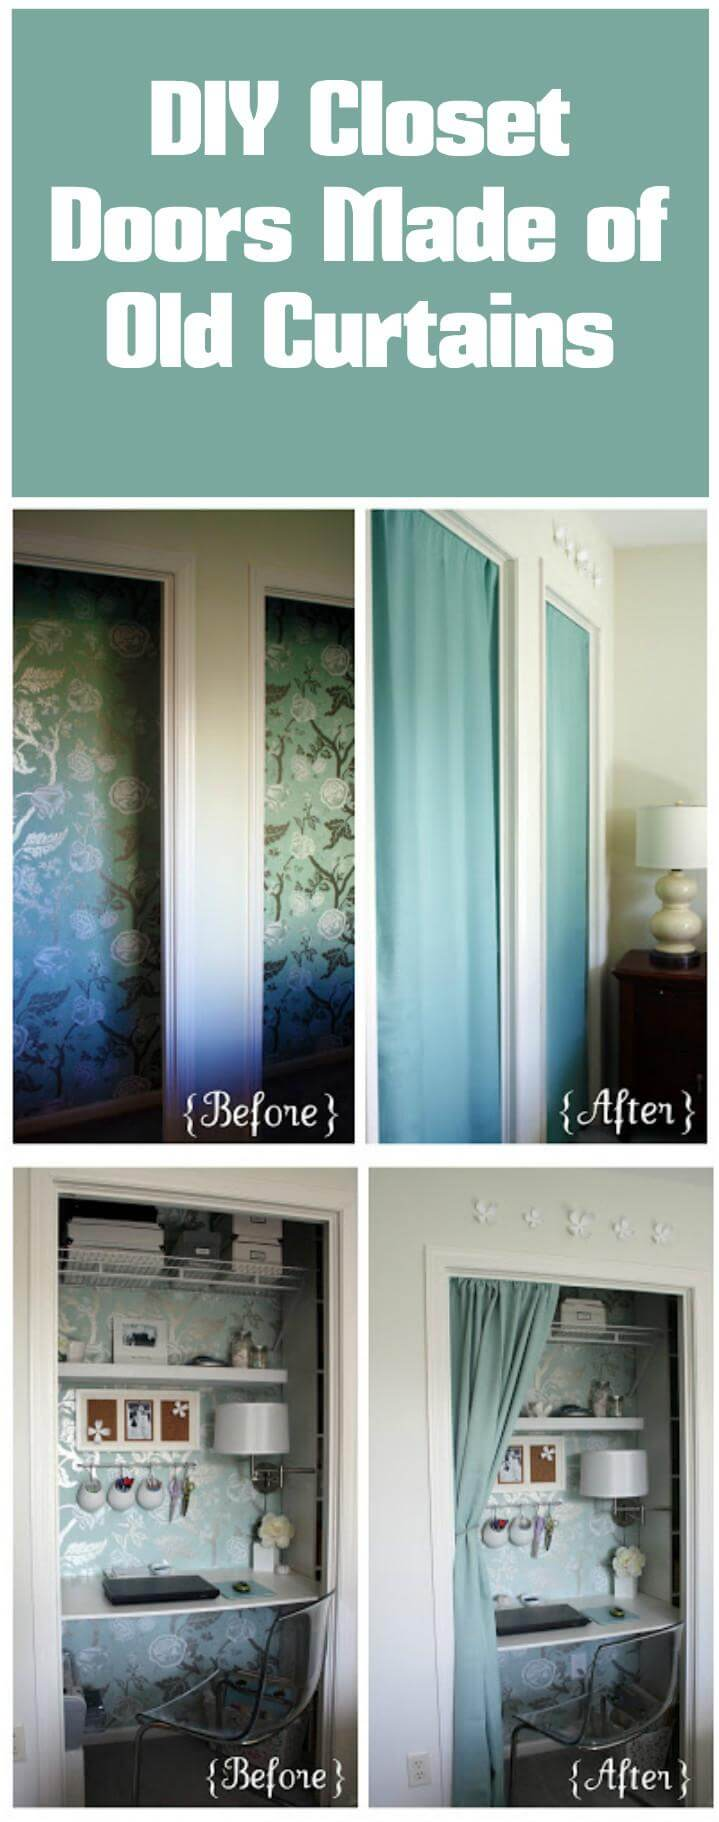 instant closet doors made out of old curtains